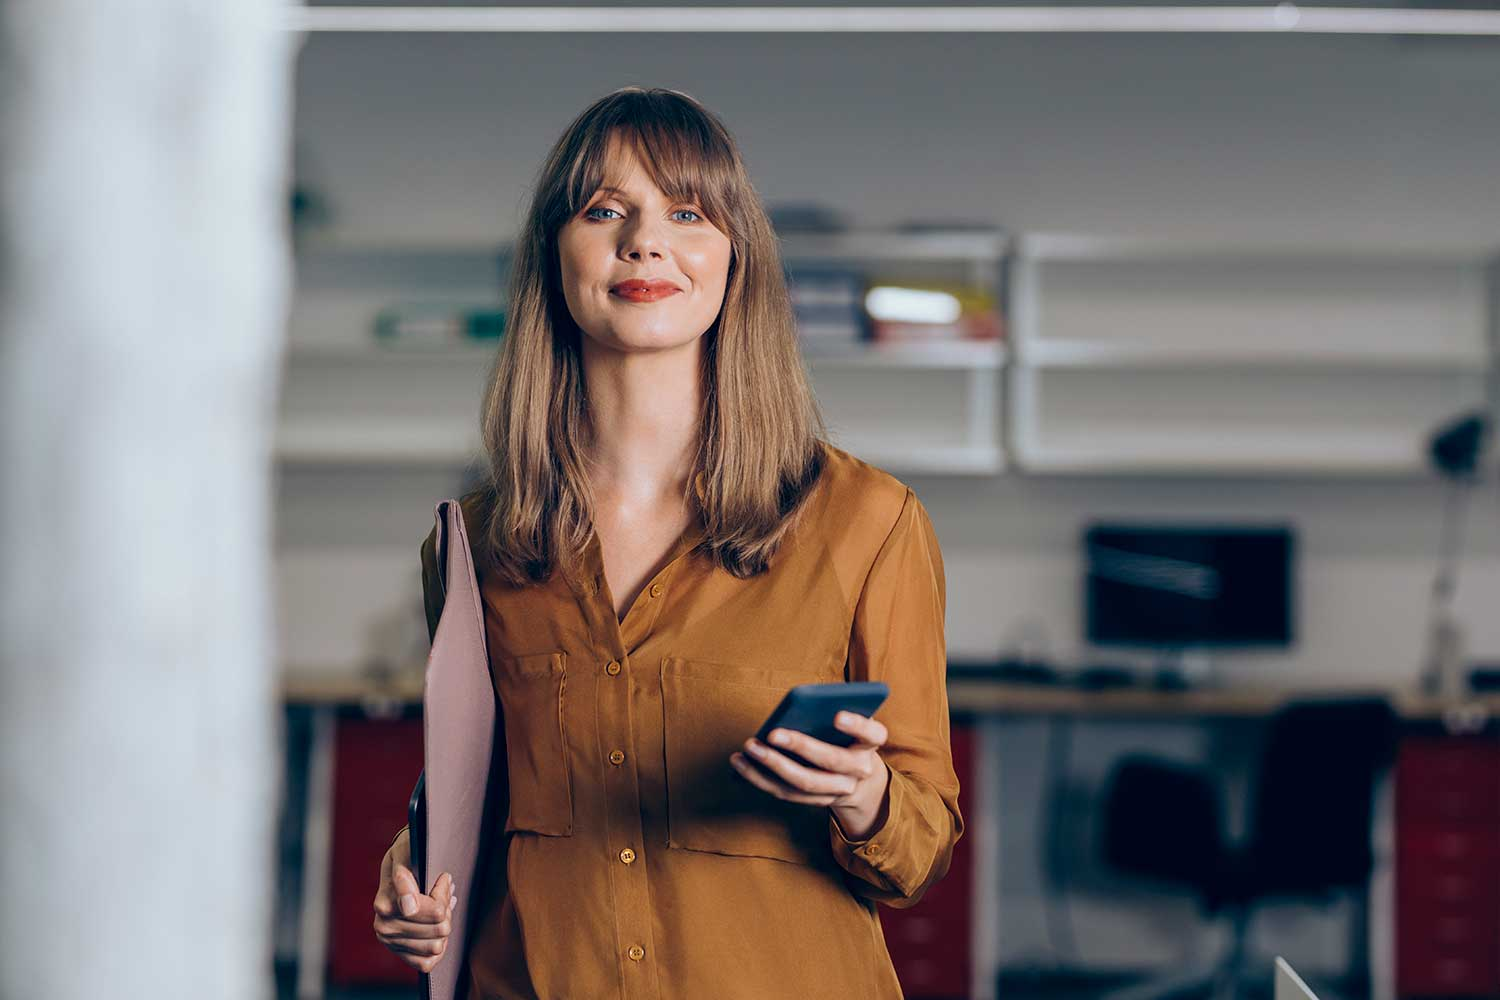 Woman in office holding phone and looking ahead